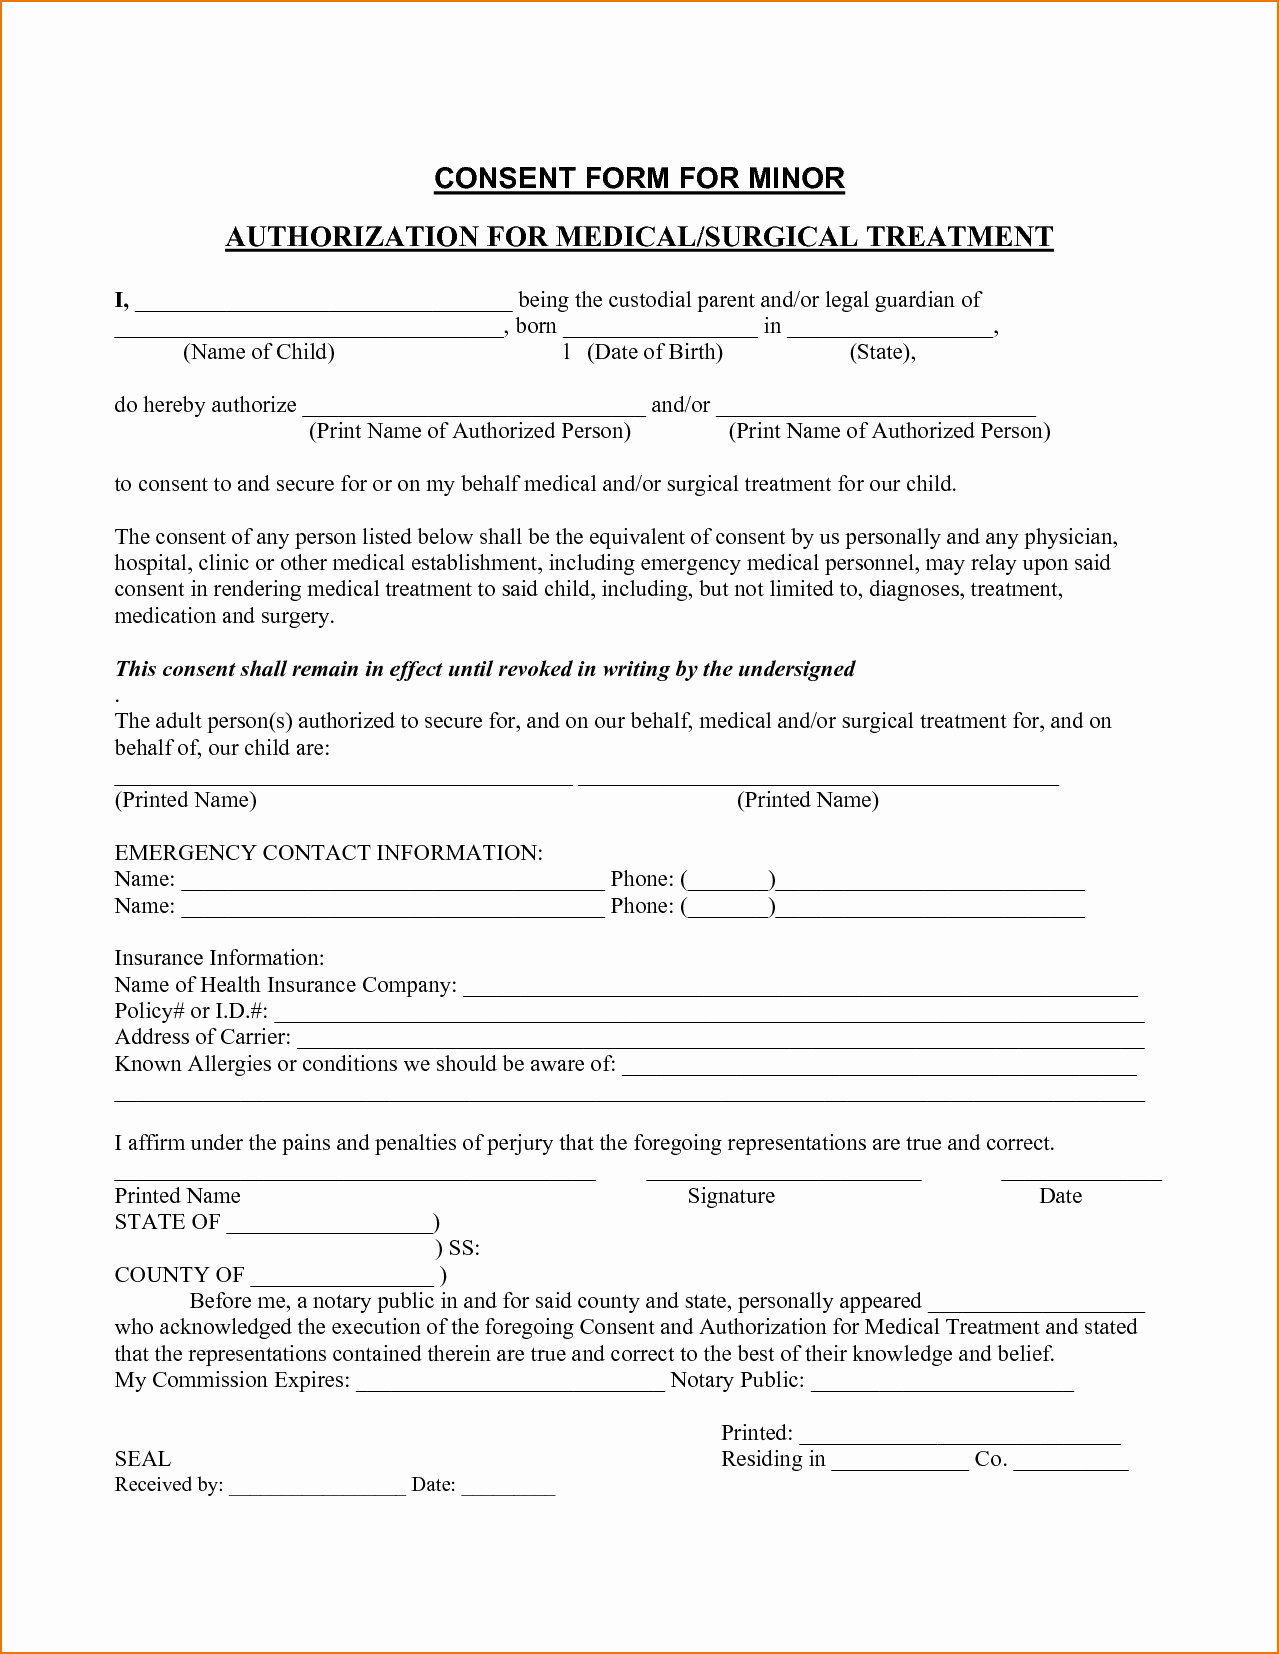 Invaluable image with free printable medical consent form for minor child